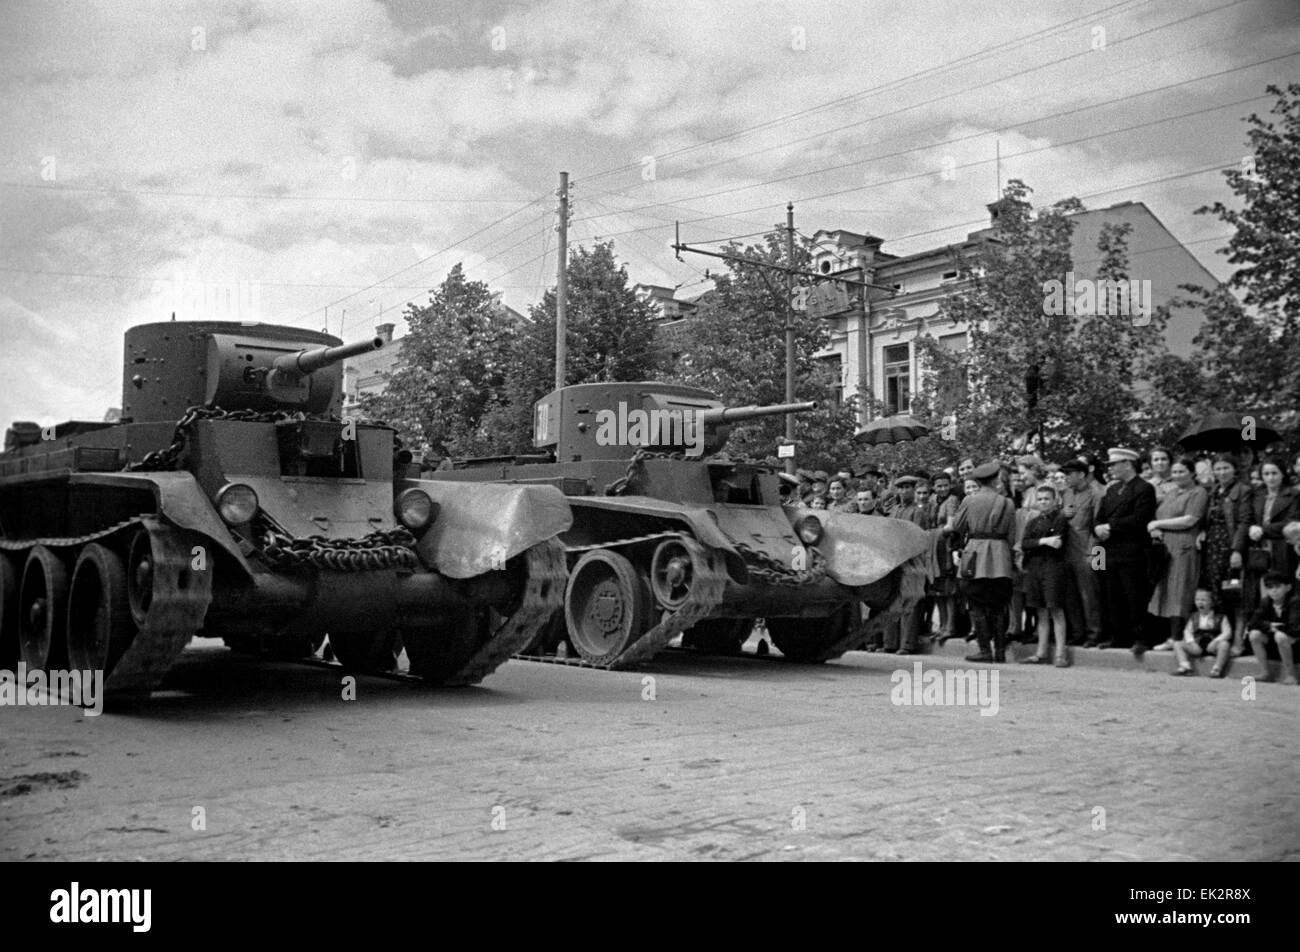 Kishinev. A military parade of the Red Army was held in view of the liberation of Bessarabia. - Stock Image